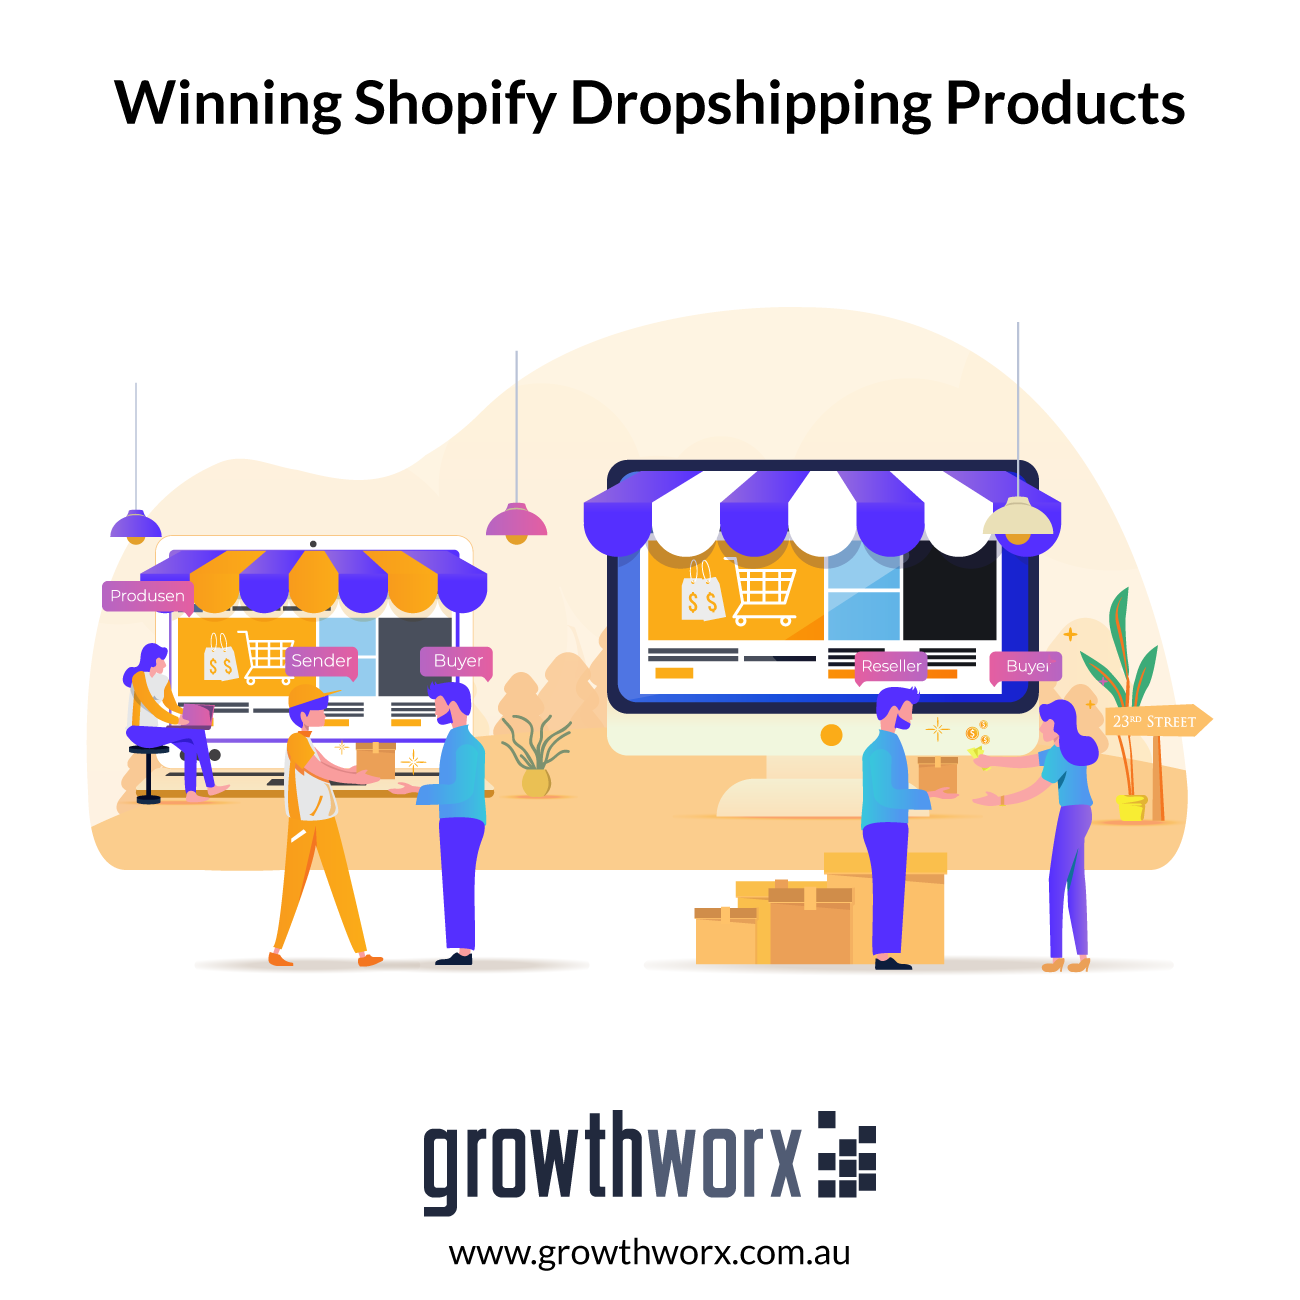 I will find winning shopify dropshipping products with video ads 1